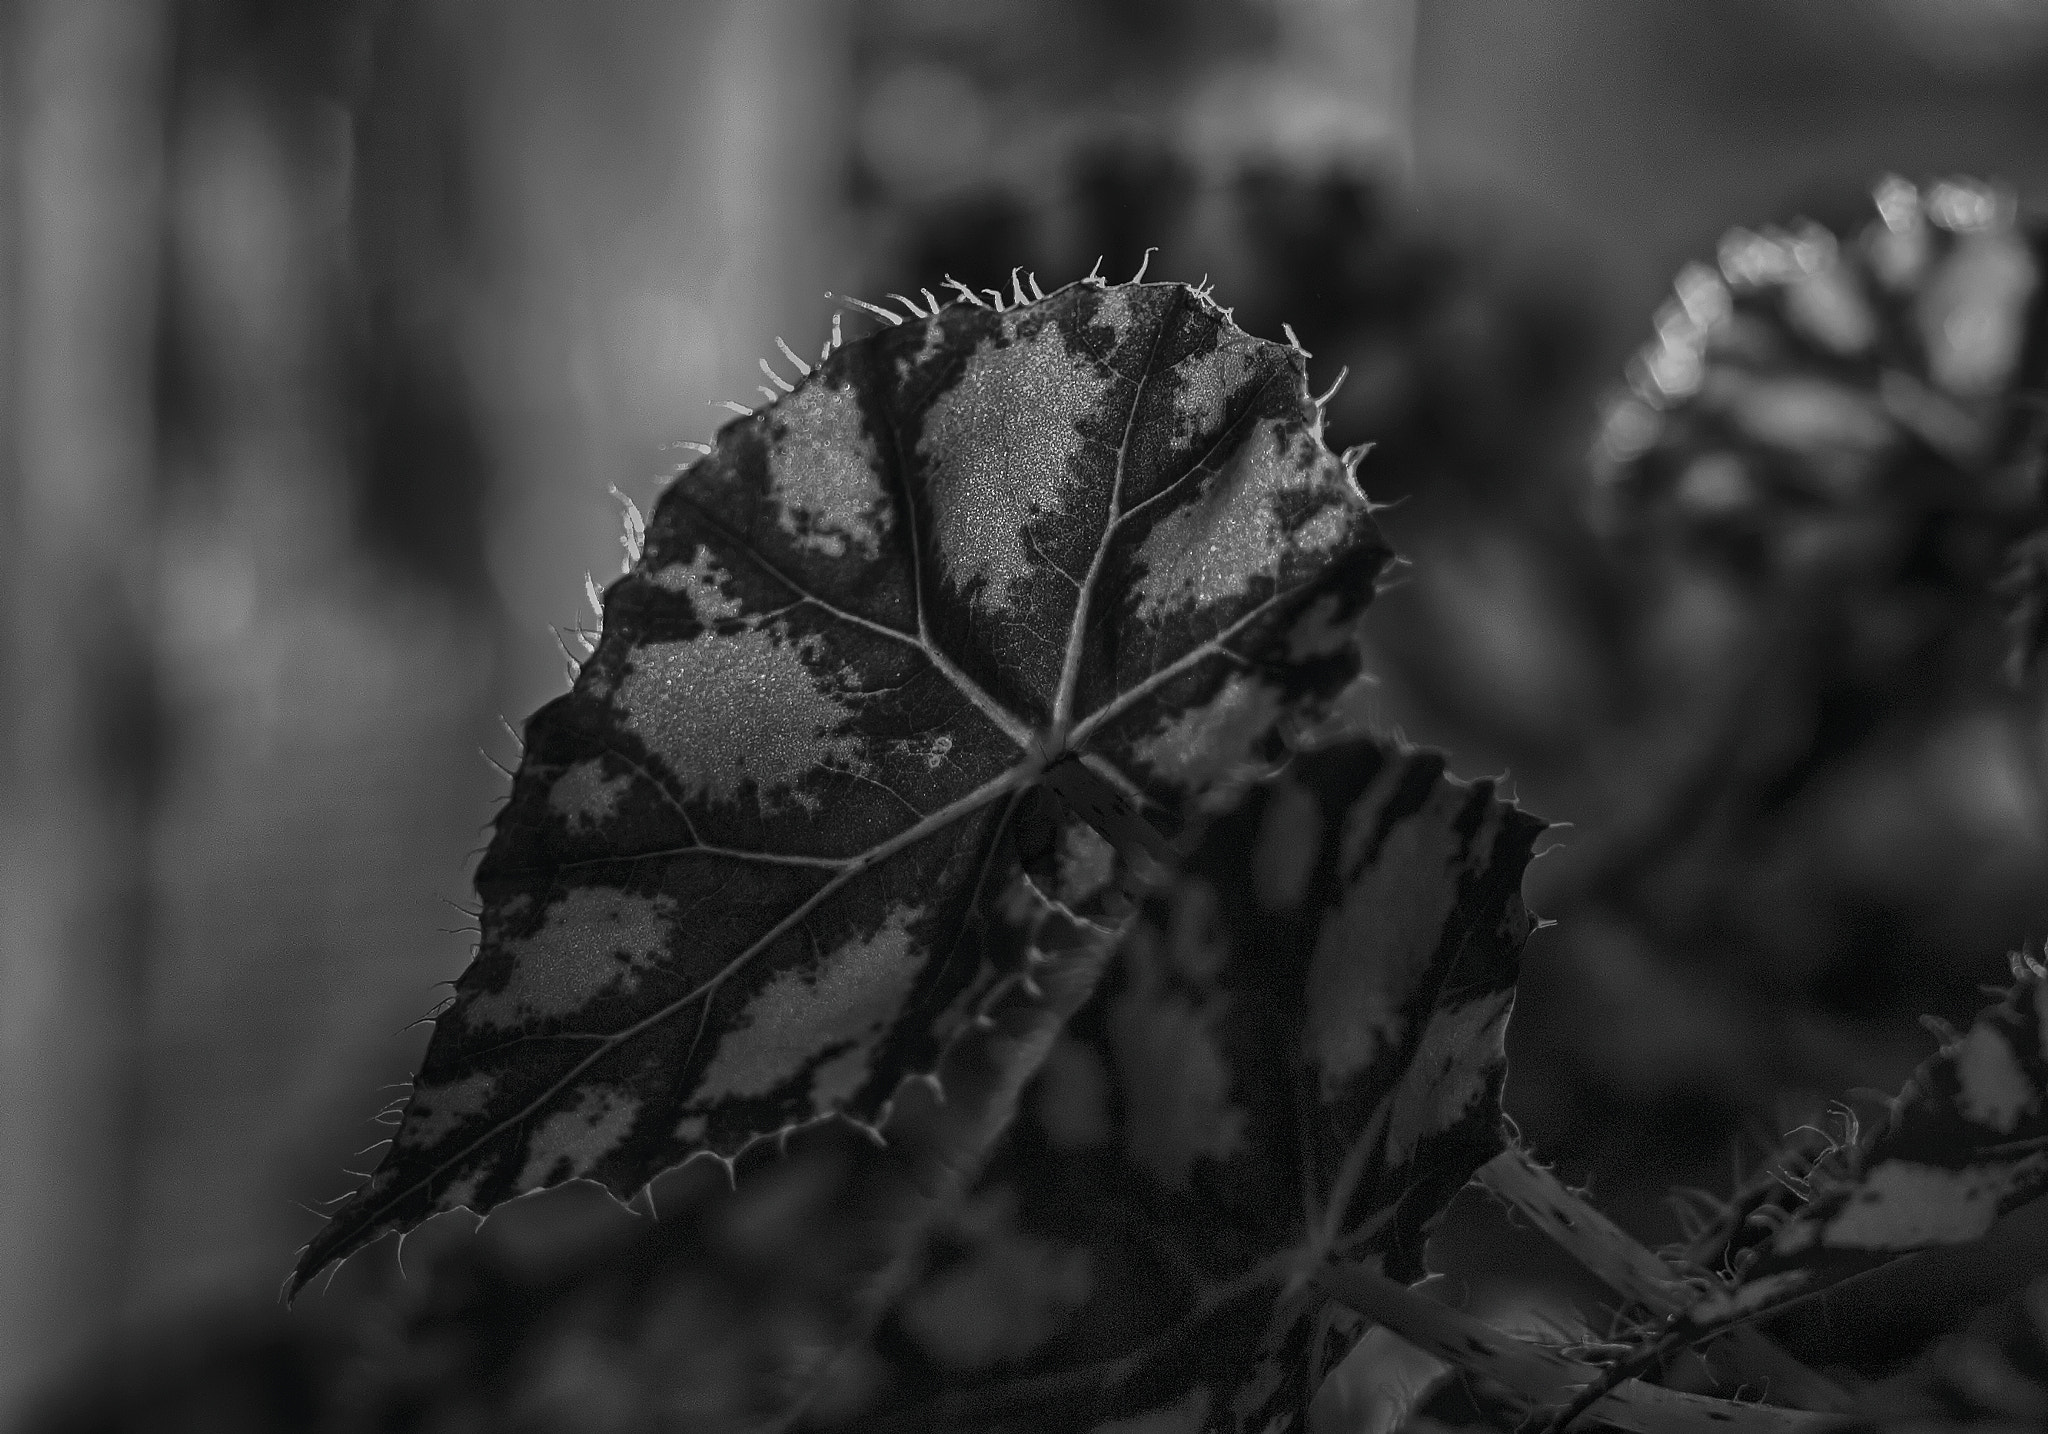 Photograph Spotted Leaves by Szabó István on 500px